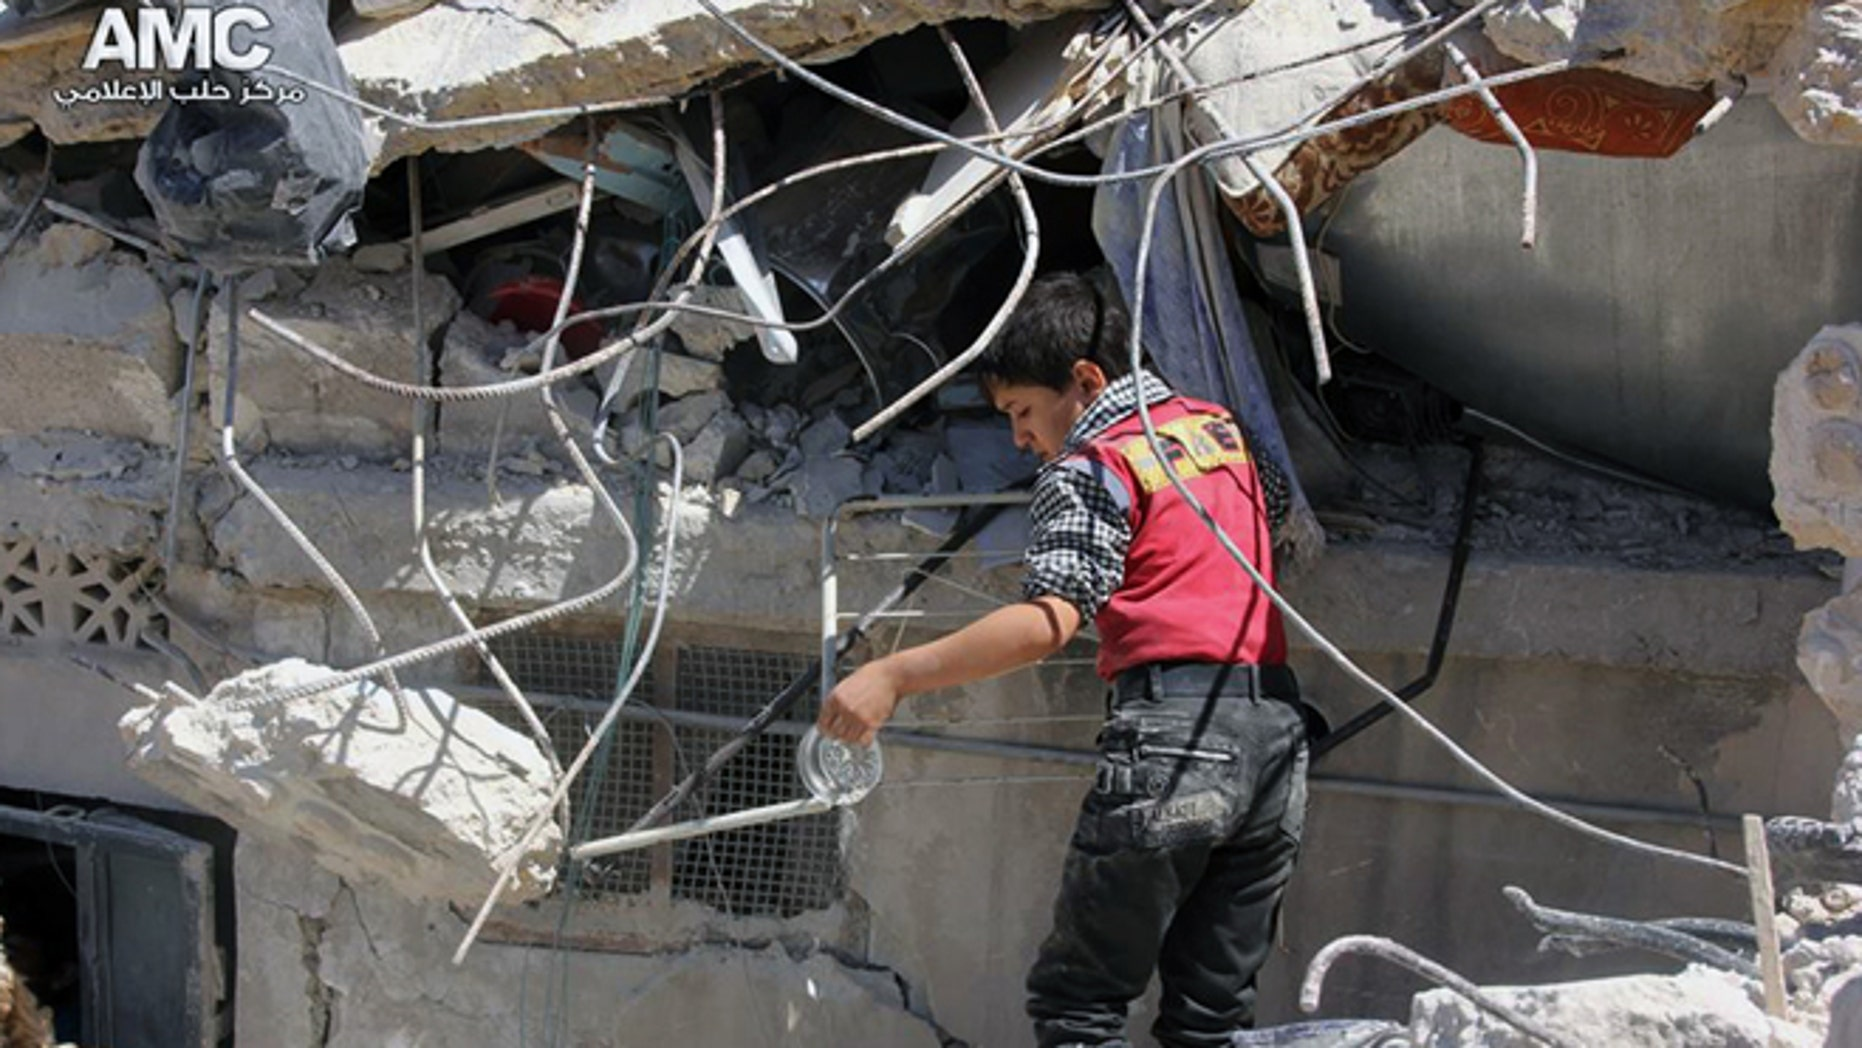 May 18, 2014: This photo provided by the anti-government activist group Aleppo Media Center (AMC), which has been authenticated based on its contents and other AP reporting, shows a Syrian young inspecting the rubble of houses that were destroyed by airstrikes from the Syrian government forces in Aleppo, Syria. (AP/Aleppo Media Center, AMC)